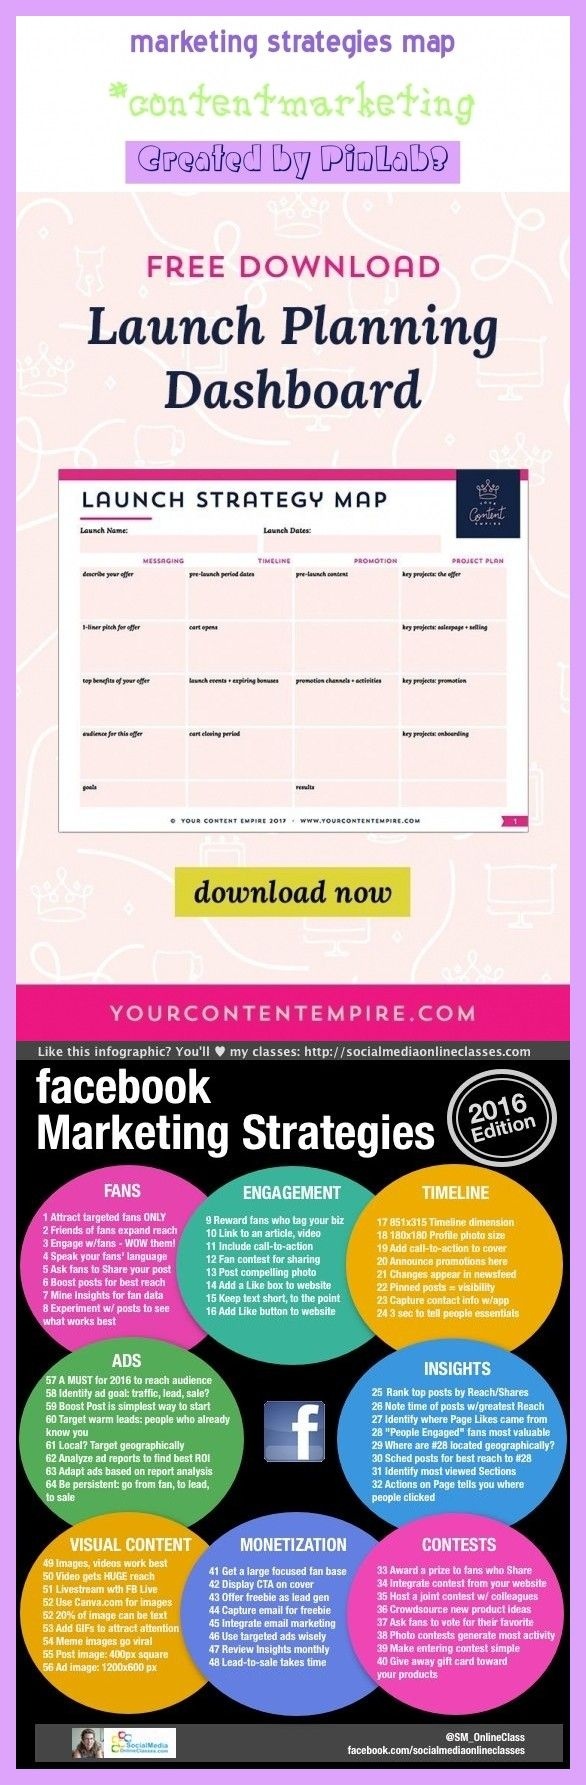 Marketing Strategies Map In 2020 Strategy Map Marketing Strategy Fan Engagement